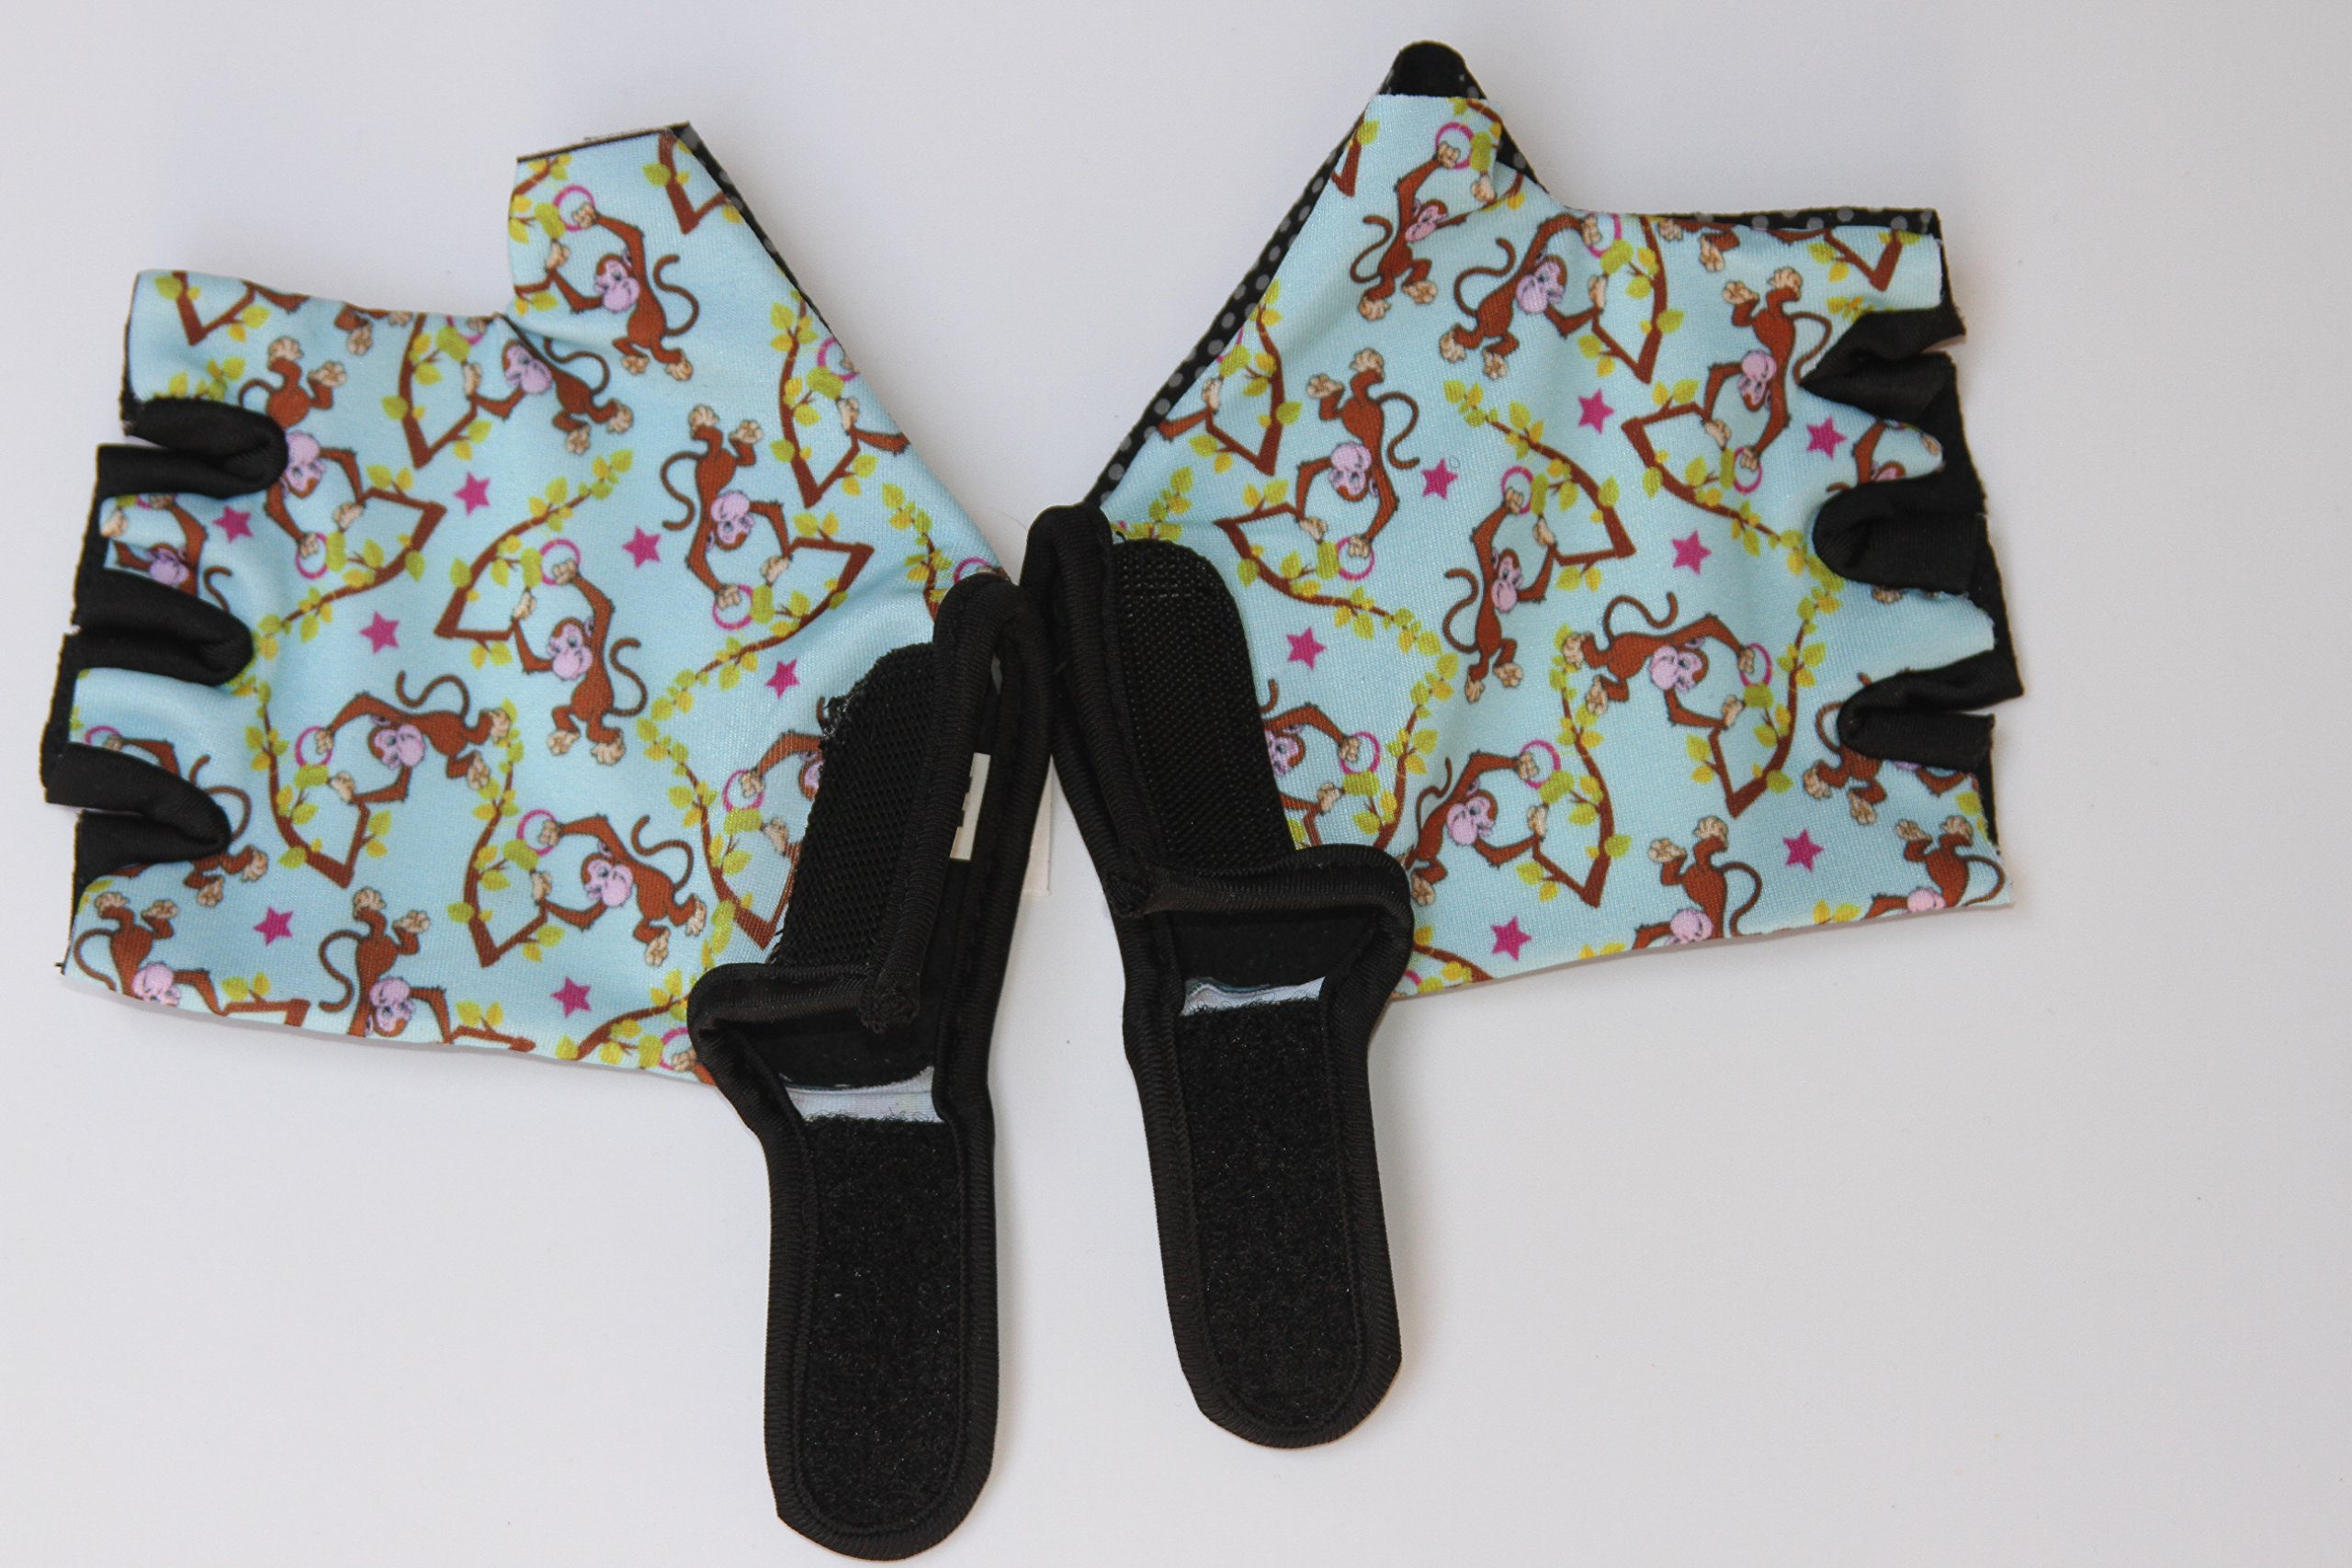 Monkey Bars Gloves with Grip Control (for 5 and 6 Years Old Children)